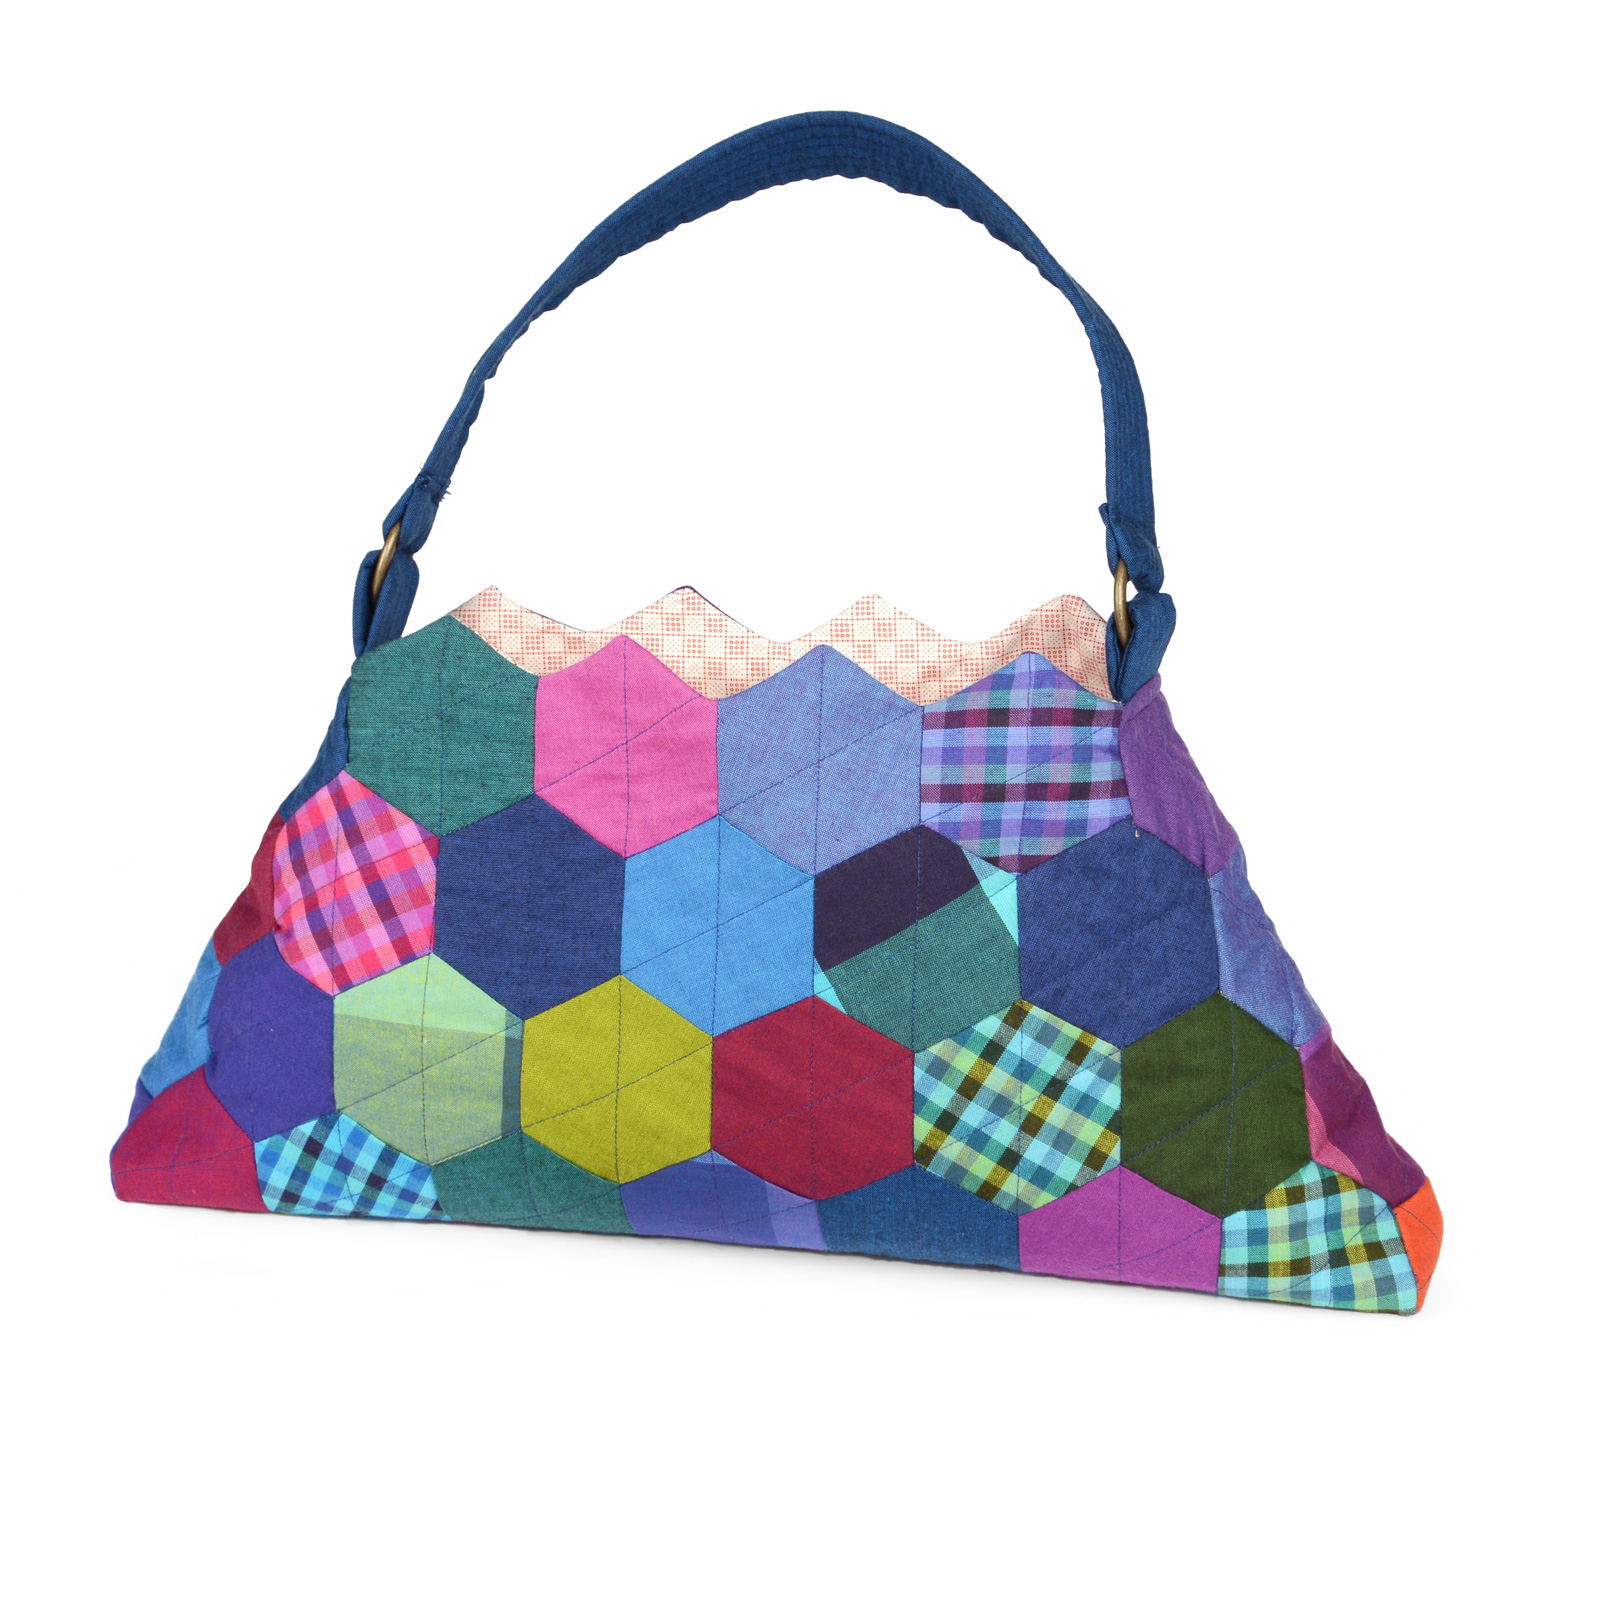 Sizzix Hexagon Purse